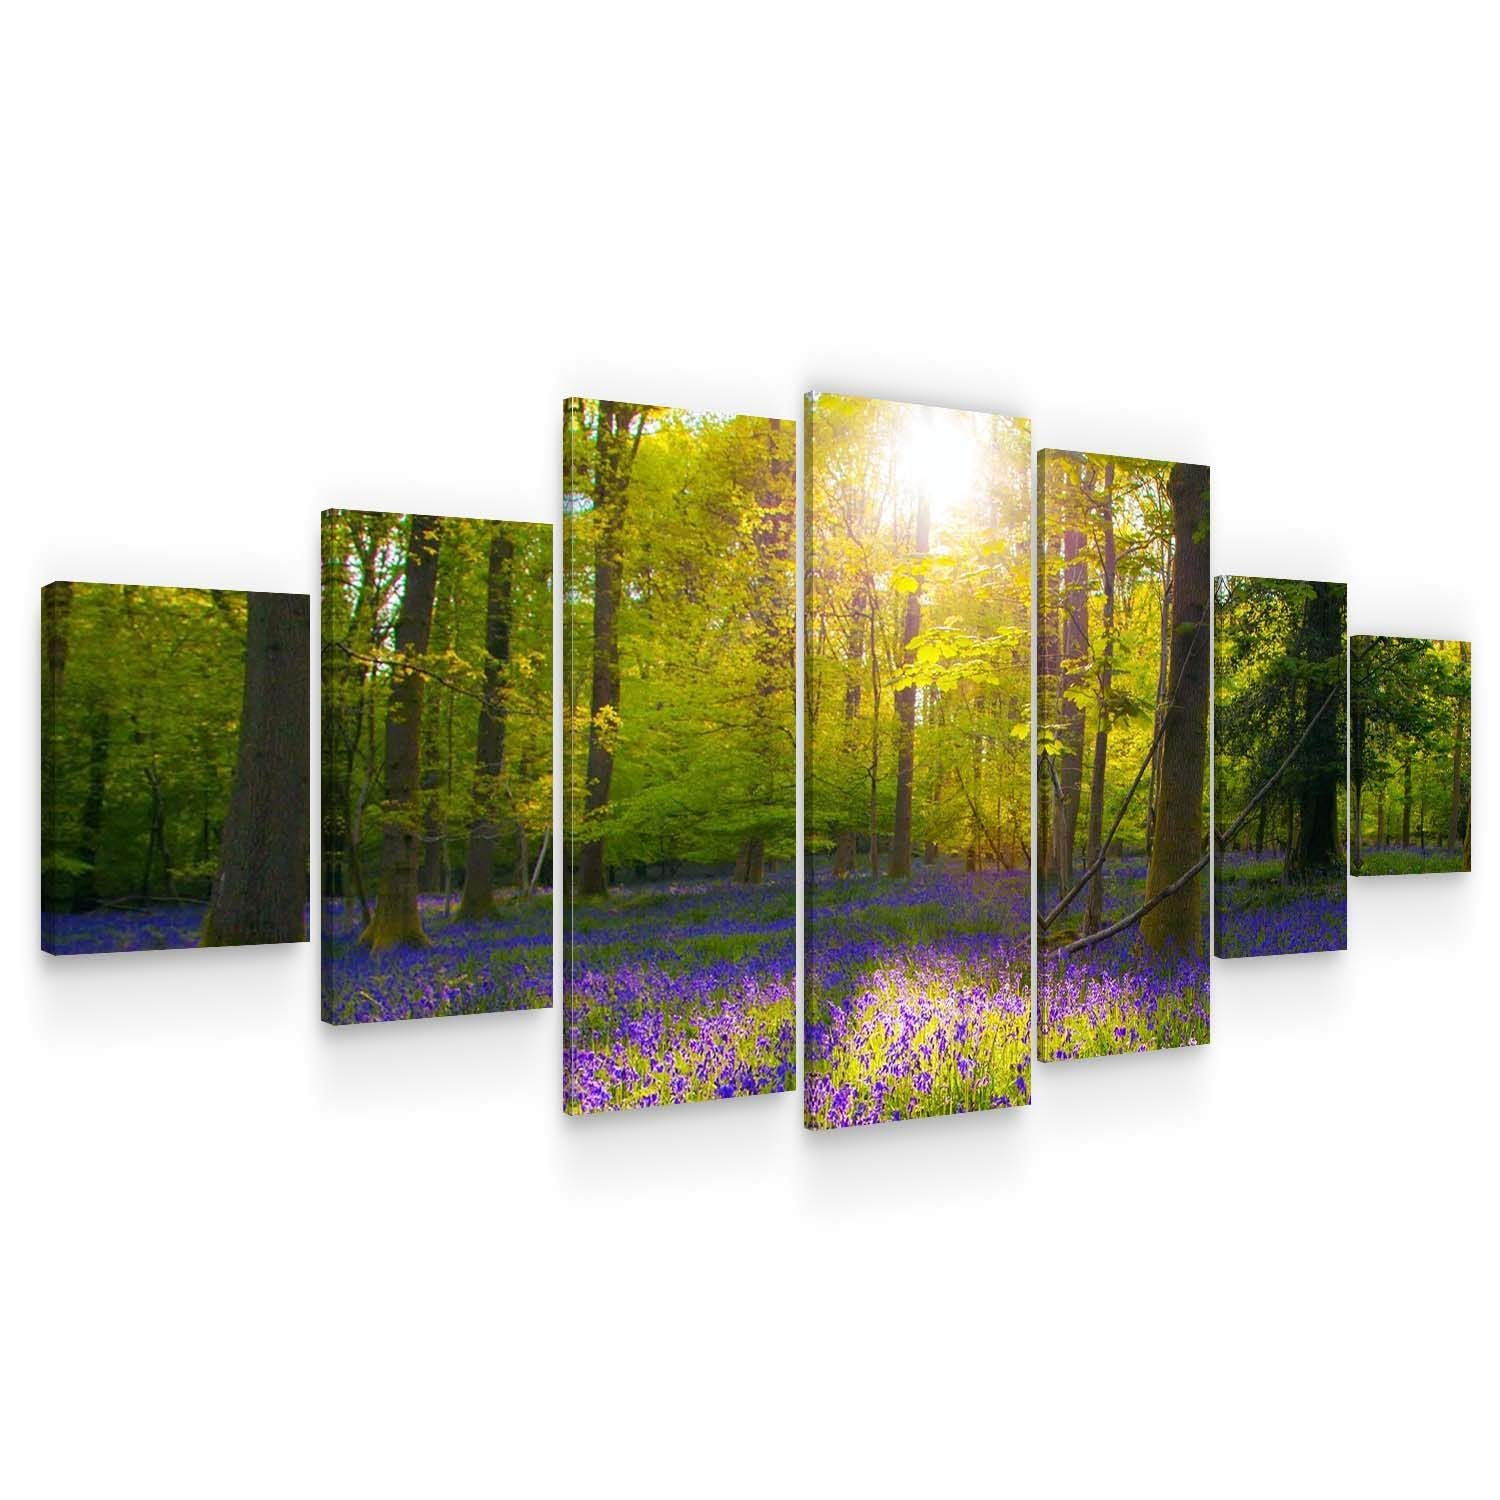 Startonight Huge Canvas Wall Art - Glade in The Forest Large Framed Set of 7 40 x 95 Inches